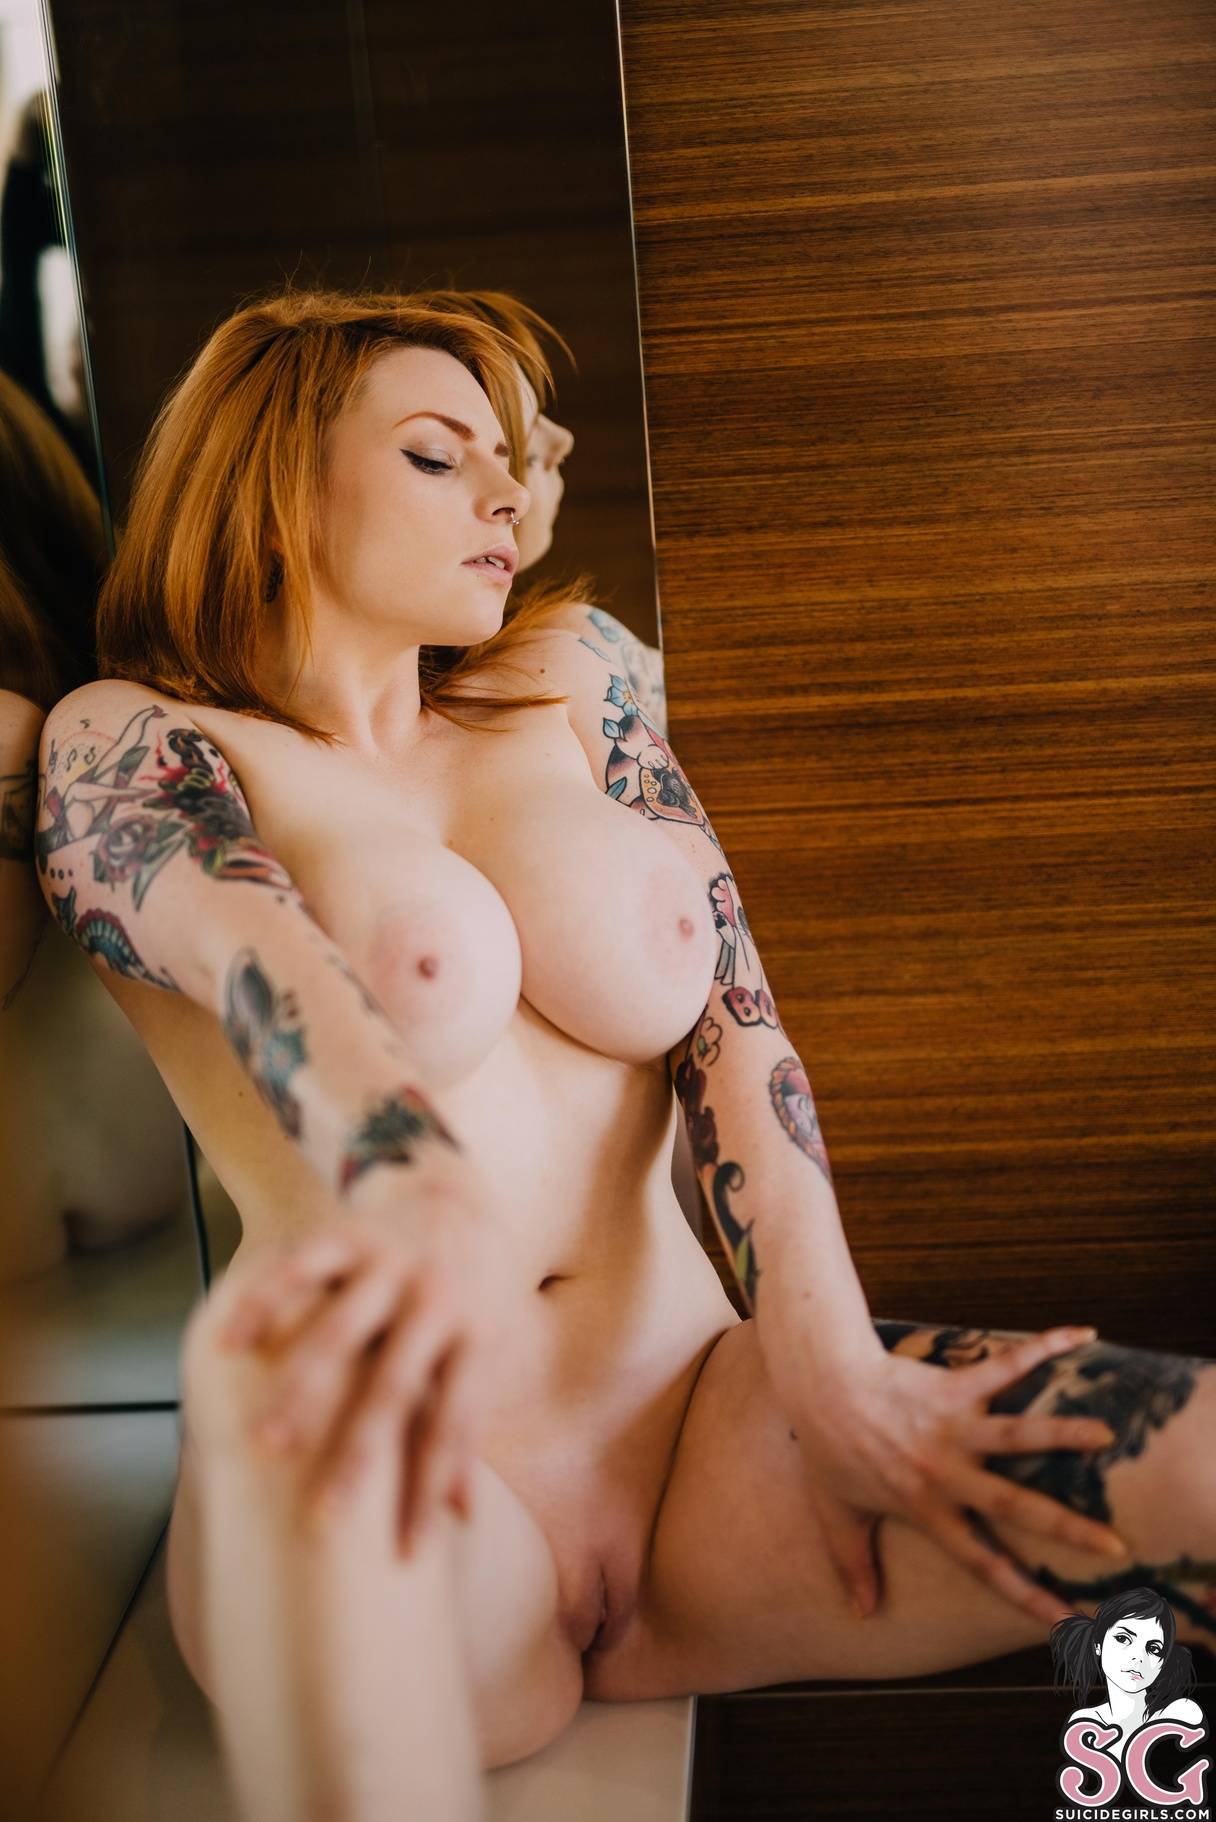 Topic, Older naked suicide girl interesting. You